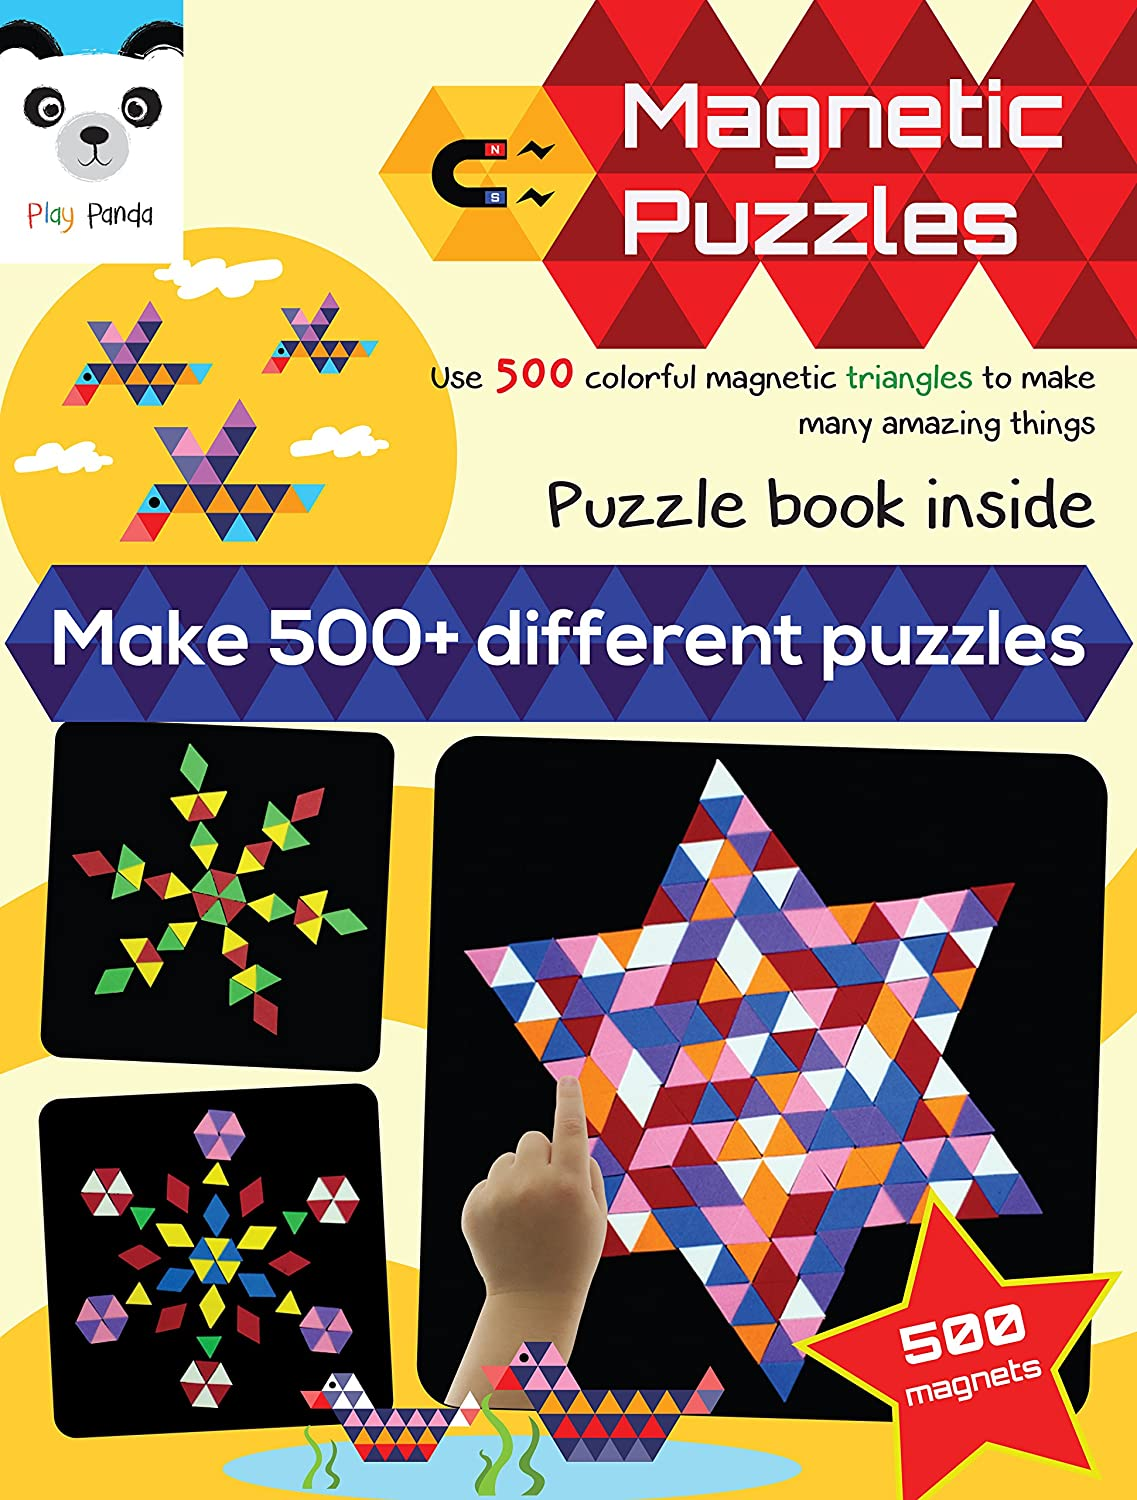 Buy Play Panda Magnetic Puzzles : Triangles (500 Colorful Magnets) (medium)  Online At Low Prices In India  Amazon